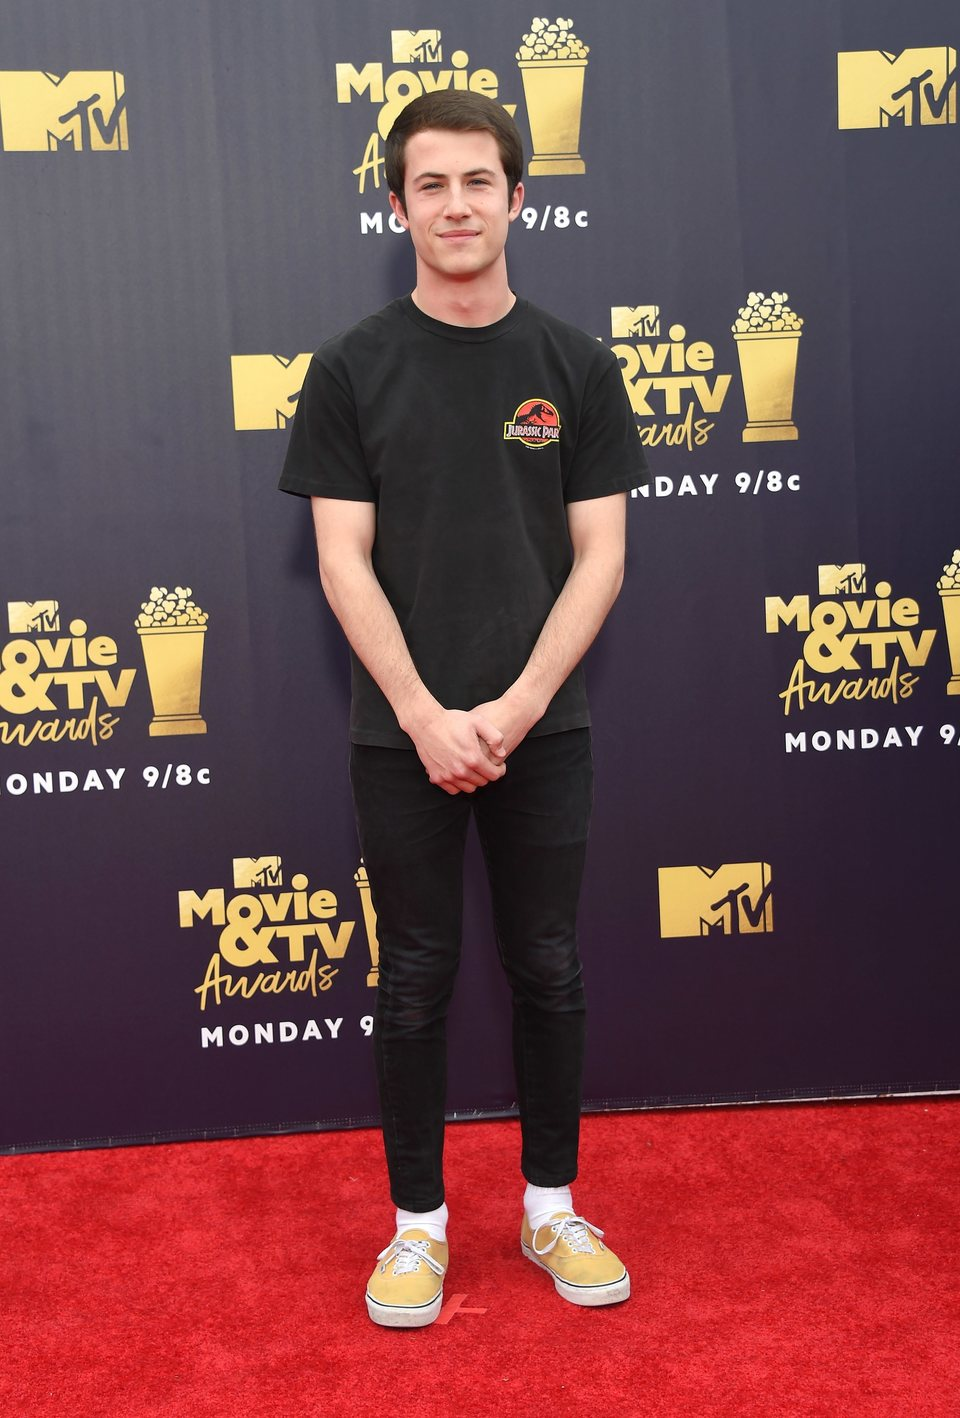 Dylan Minnette en la alfombra roja de los MTV Movie & TV Awards 2018